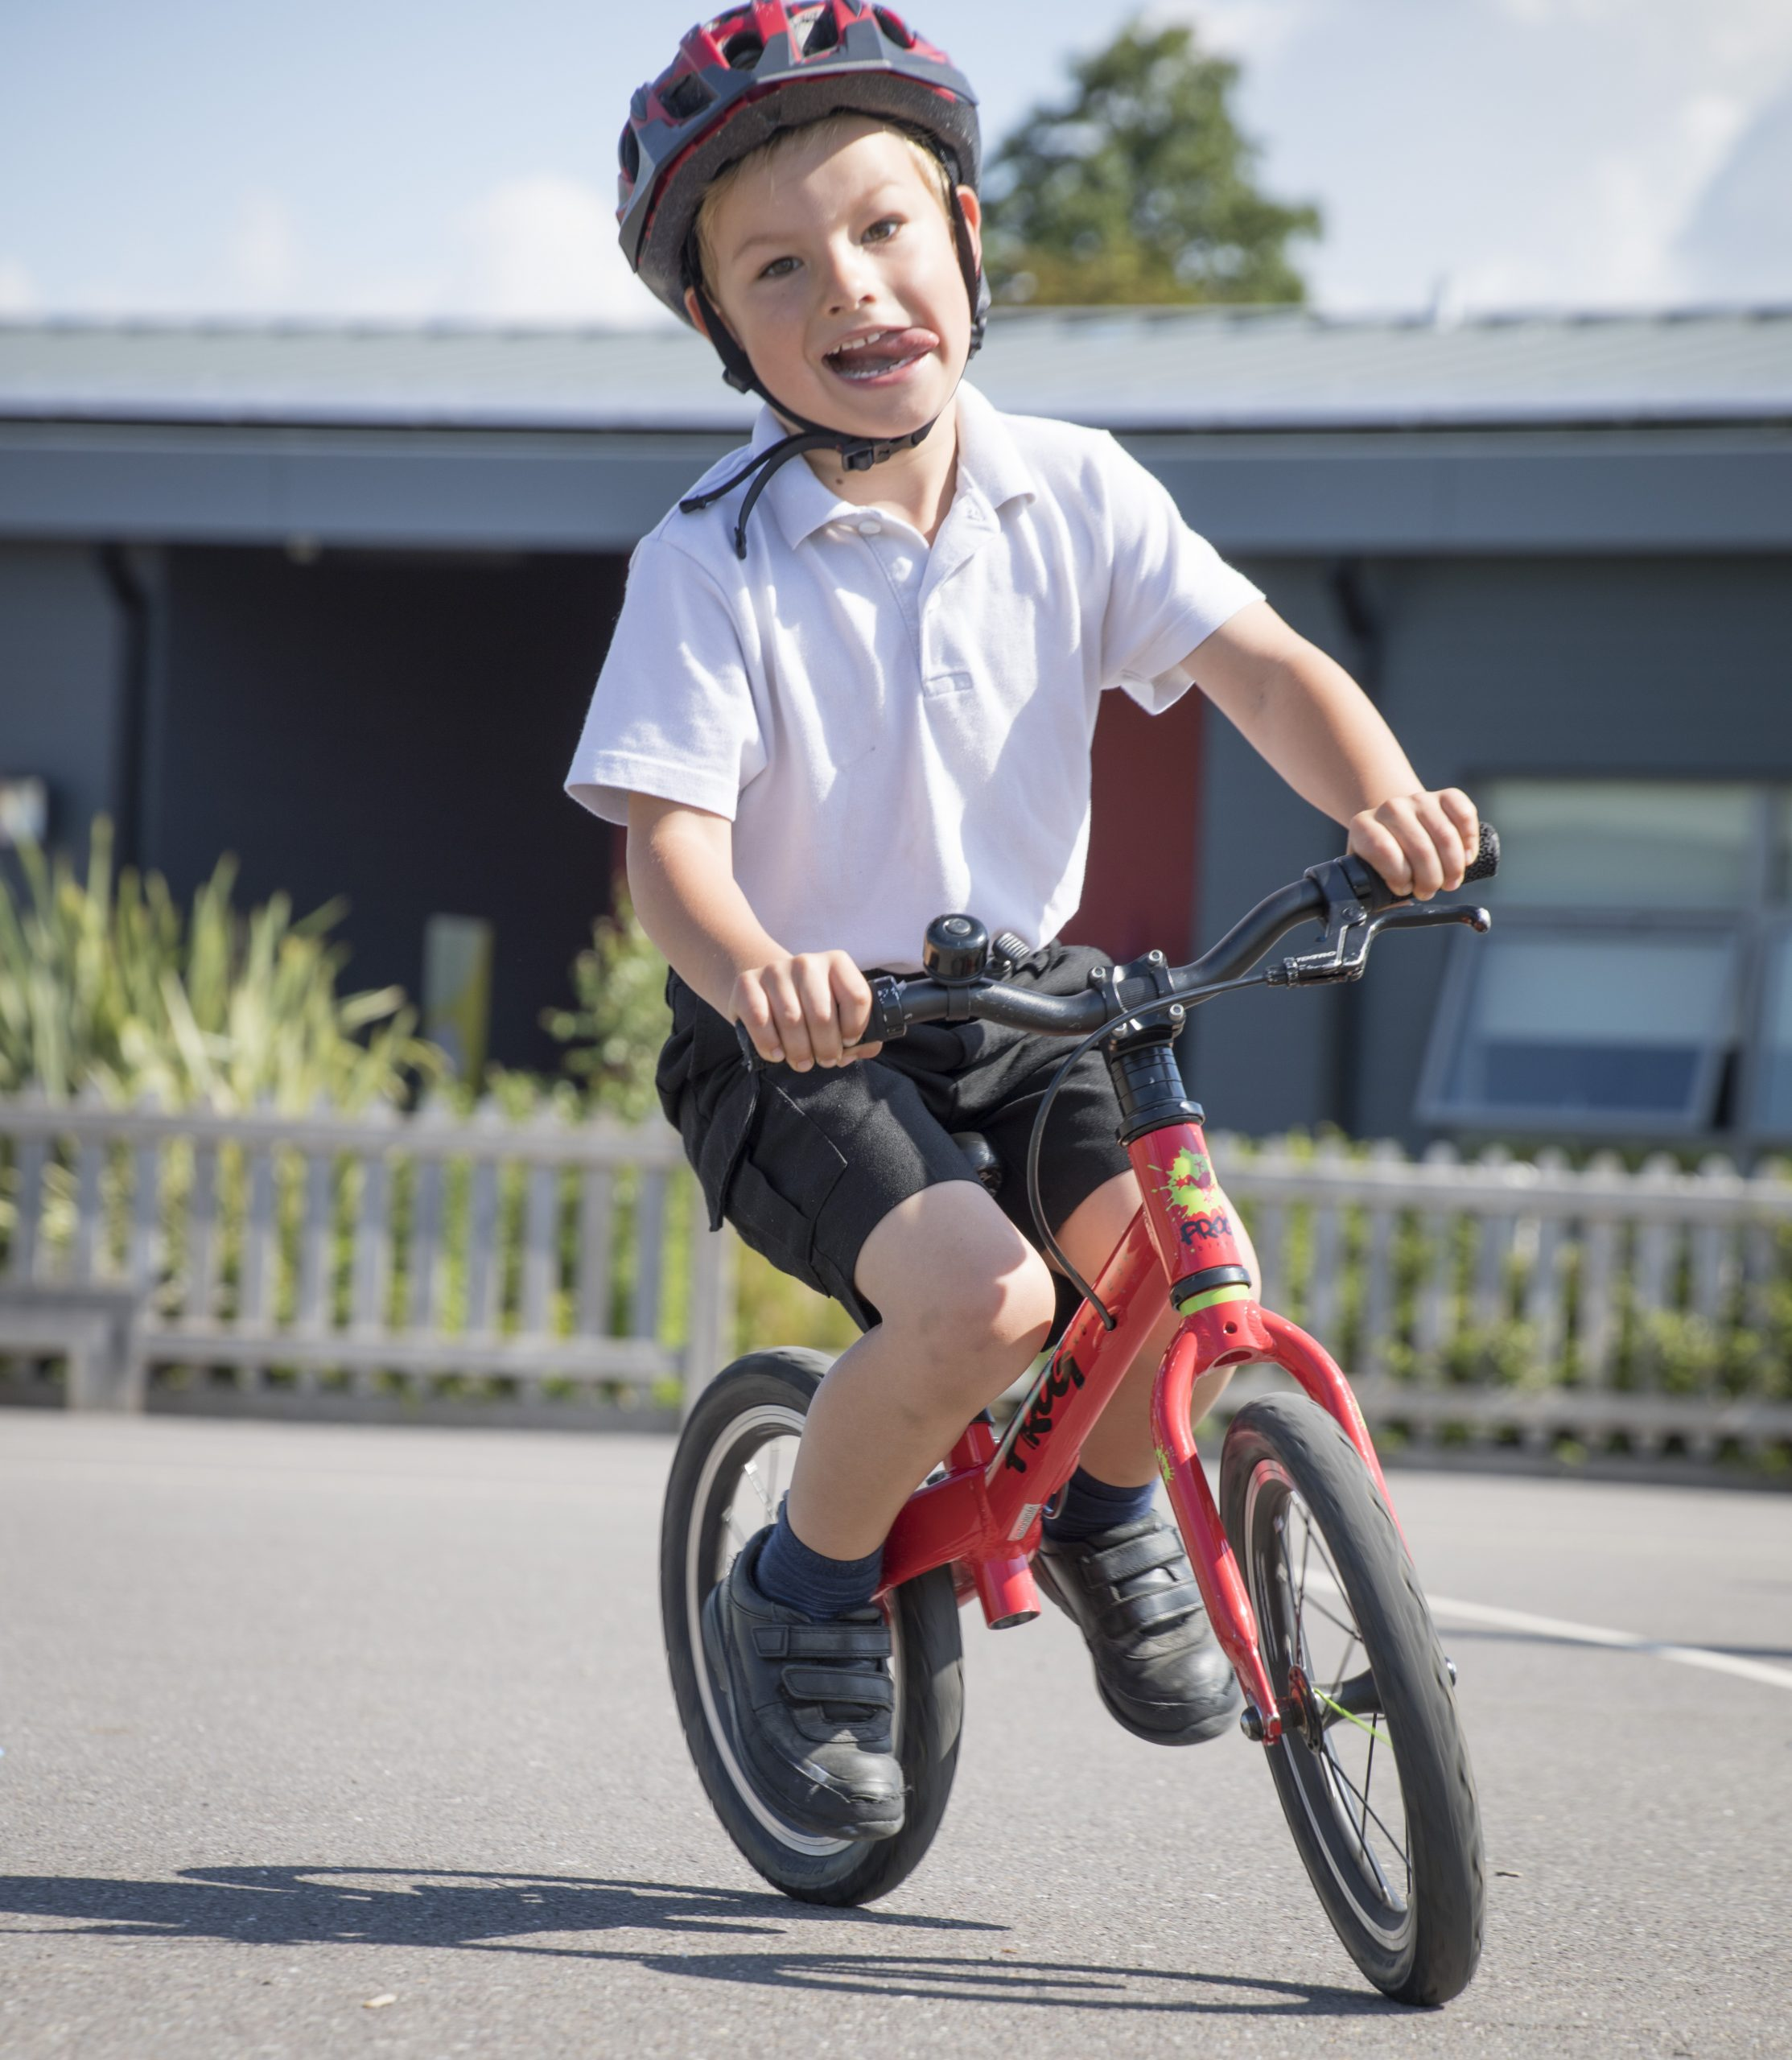 Small boy on a bike sticking his tongue out